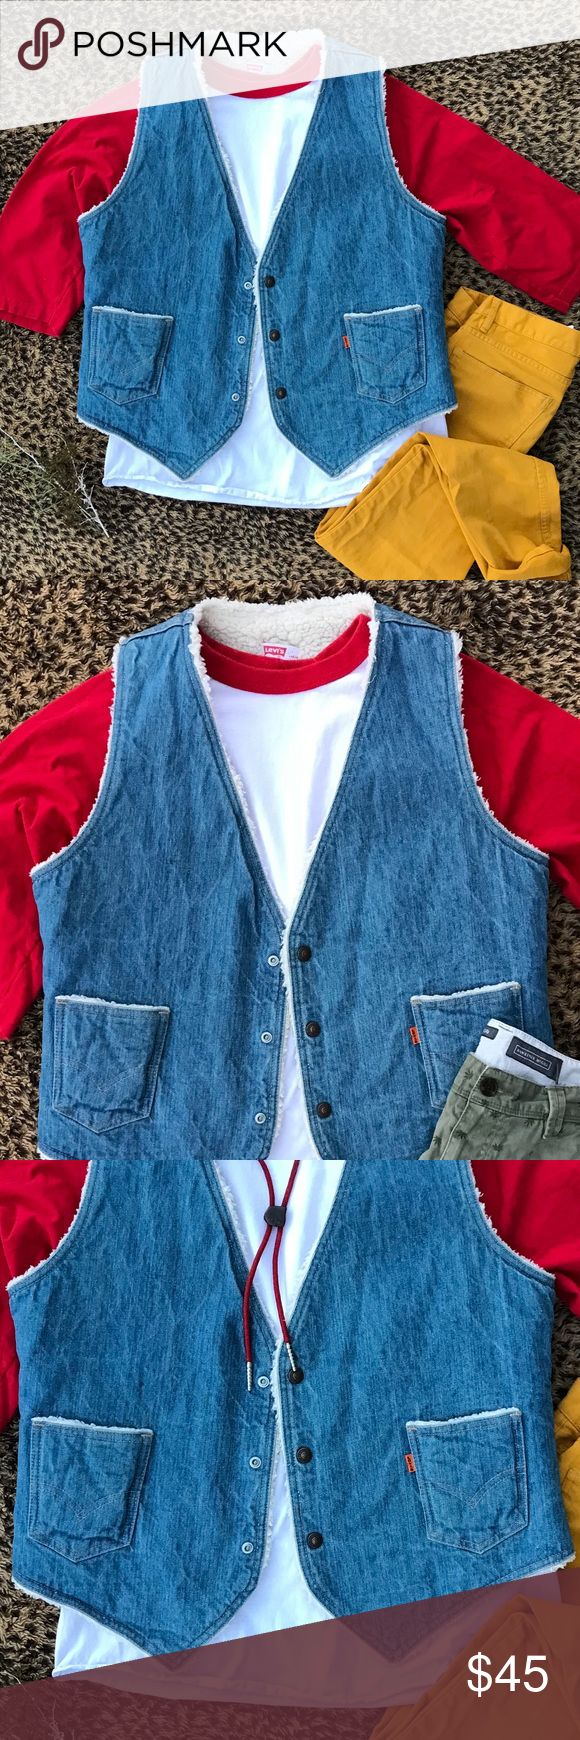 "[vintage] Levi vest vintage levi denim vest with faux shearling. two front pockets and snap closure. length: 25"" in mint vintage condition, no damage. Vintage Jackets & Coats Vests"